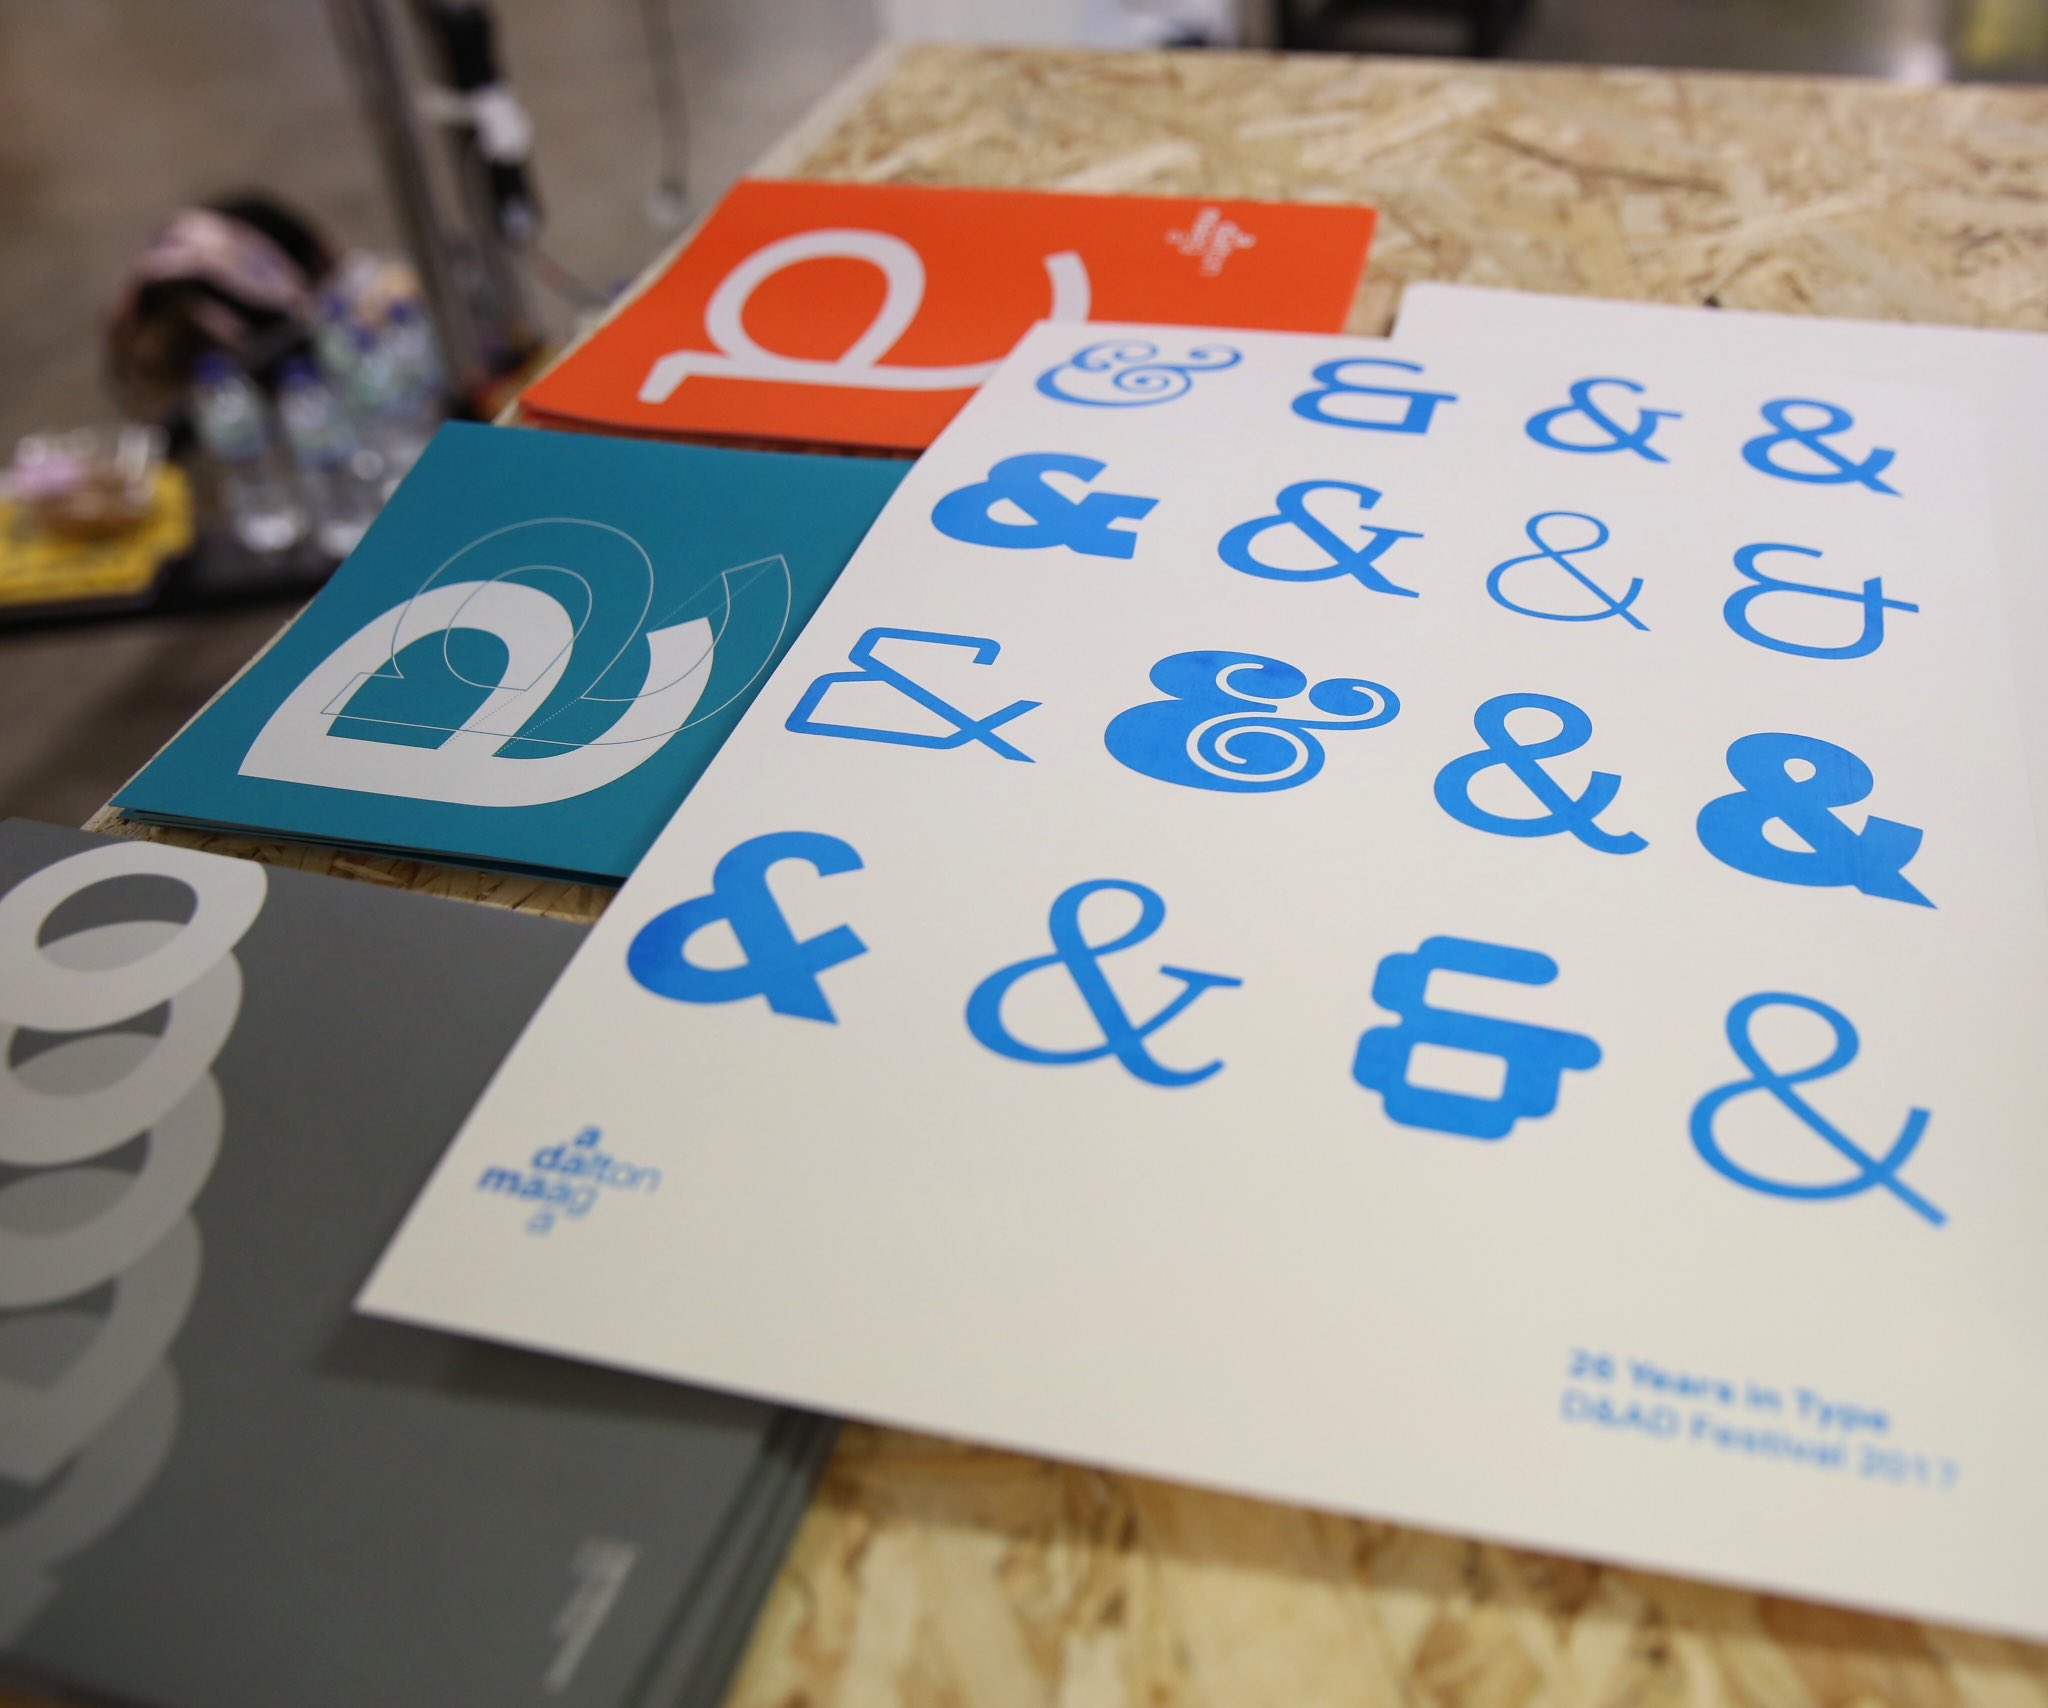 I went to the @DaltonMaag #screenprinting workshop and made this poster and didn't get any ink on my hands 😌🖖🏼#dandad17 #typography https://t.co/uMgun2Xt1T